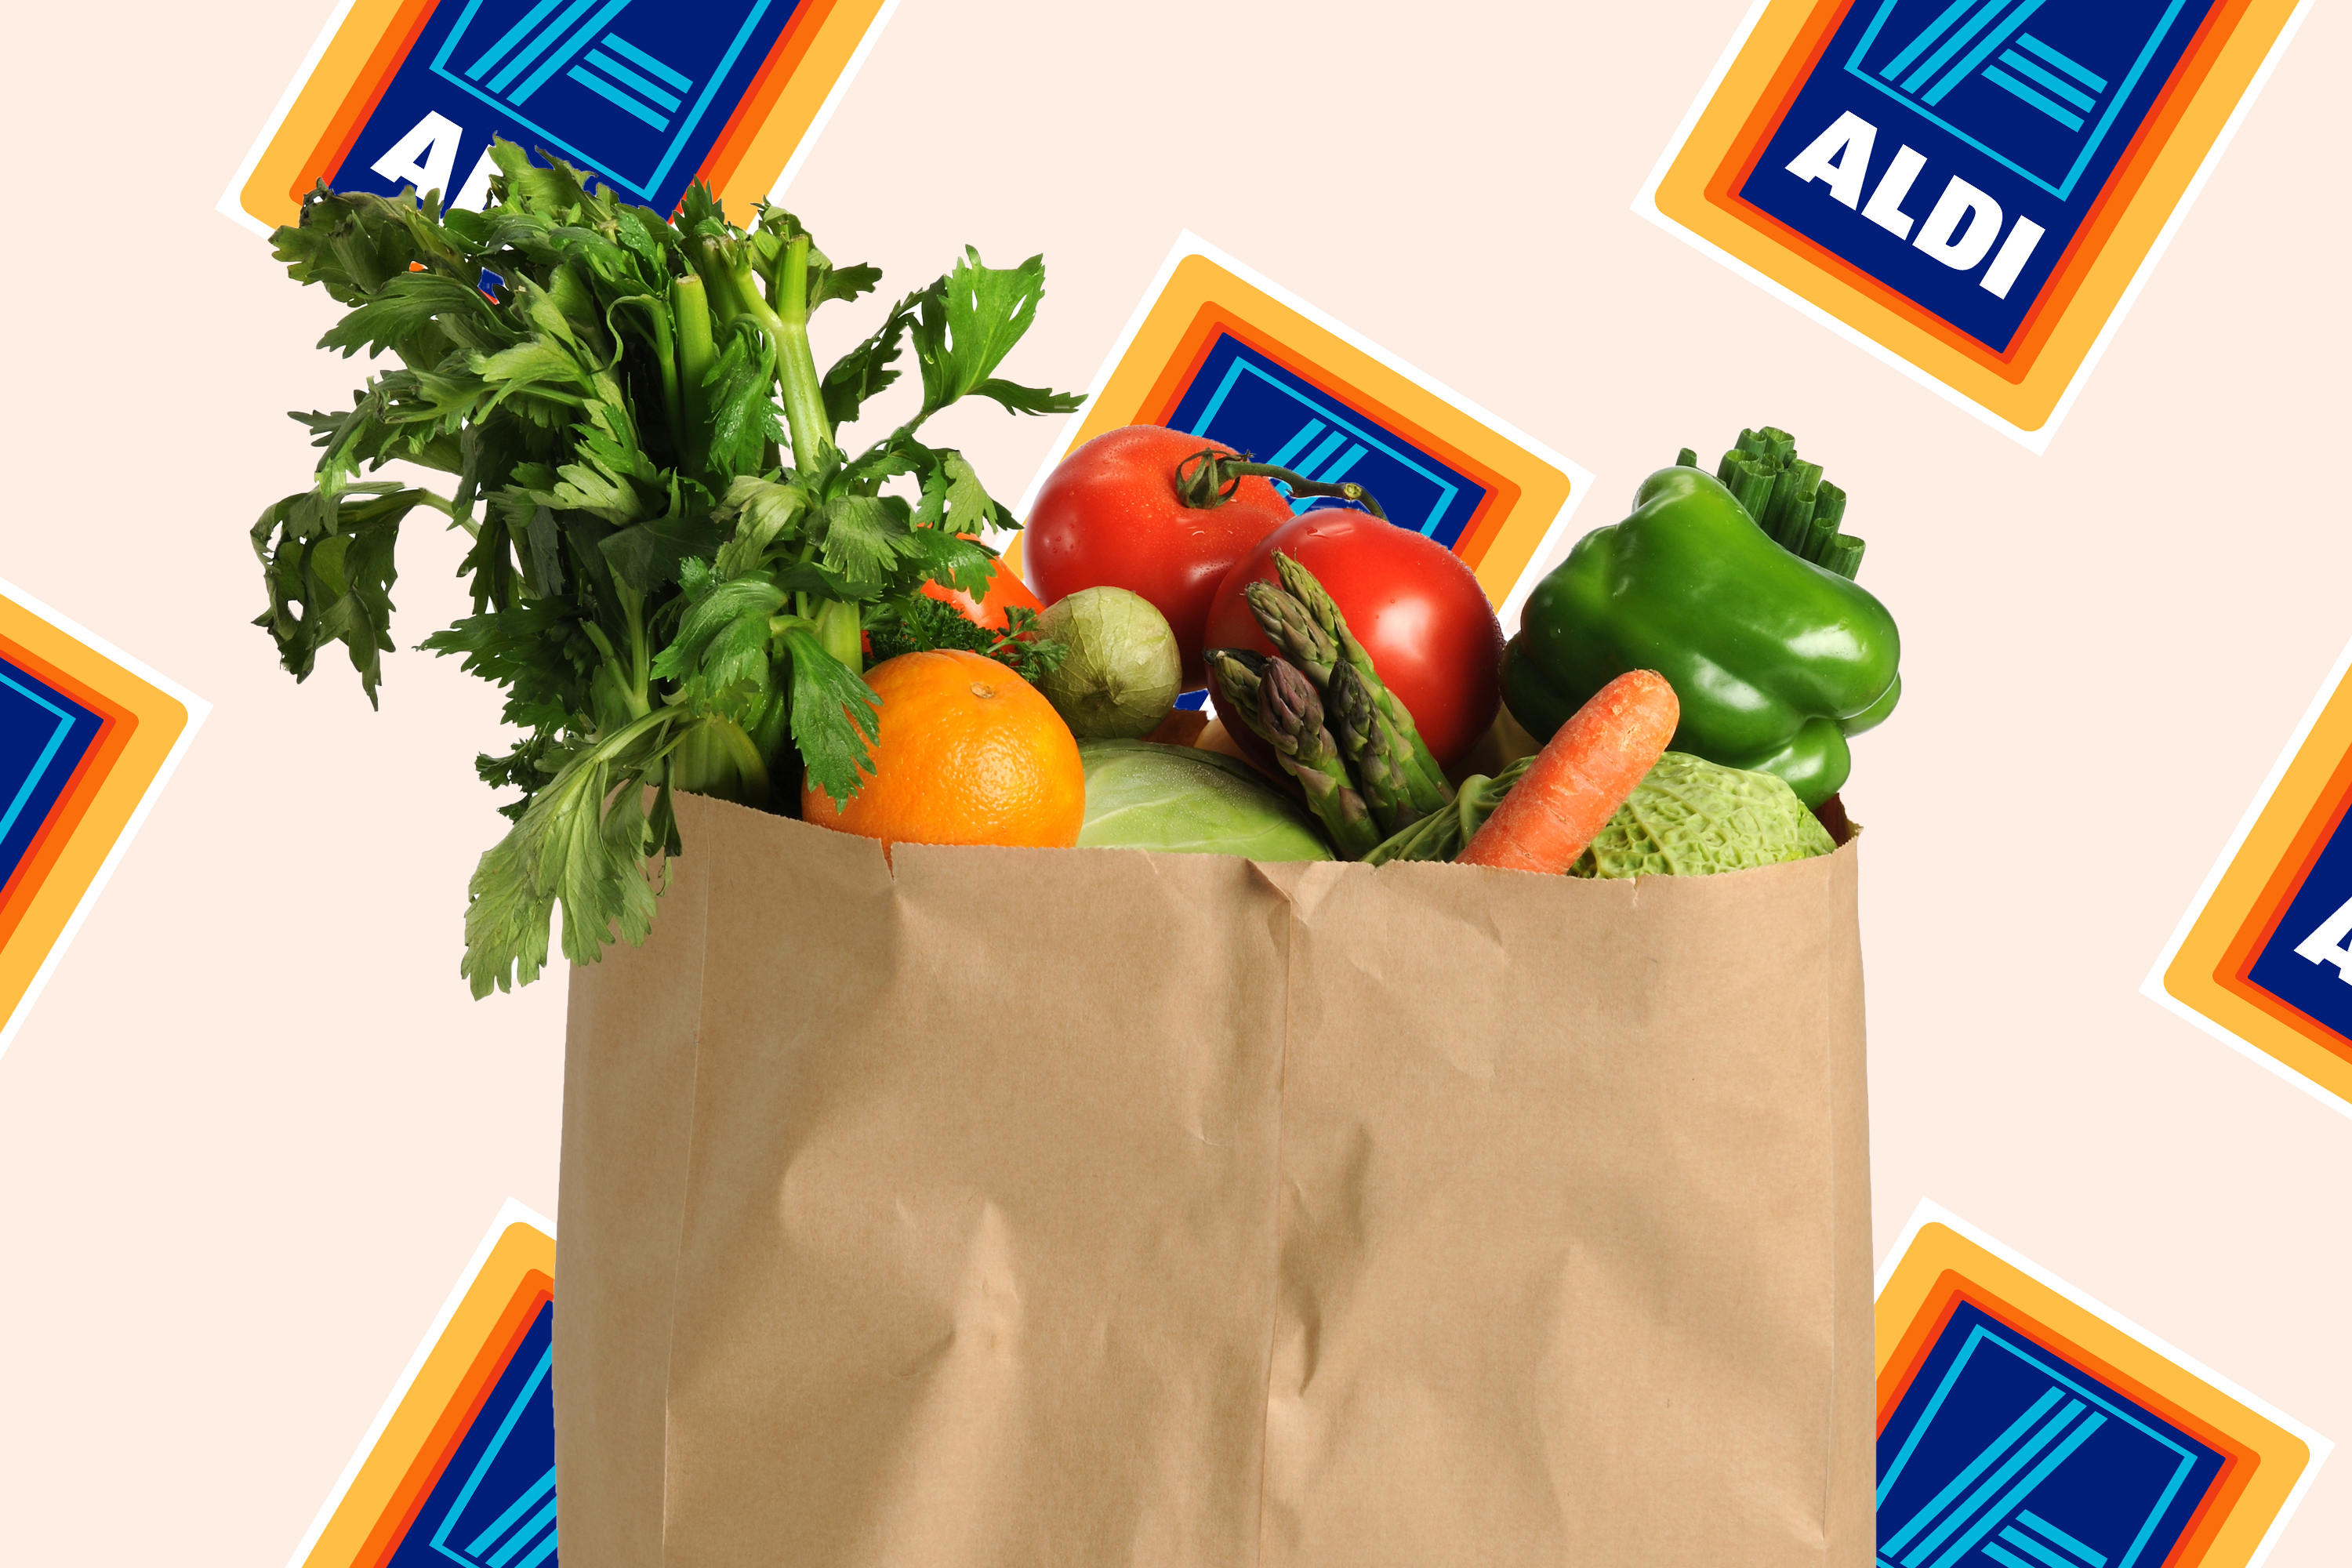 I Went to Aldi for the First Time and Here's What I Found | Kitchn